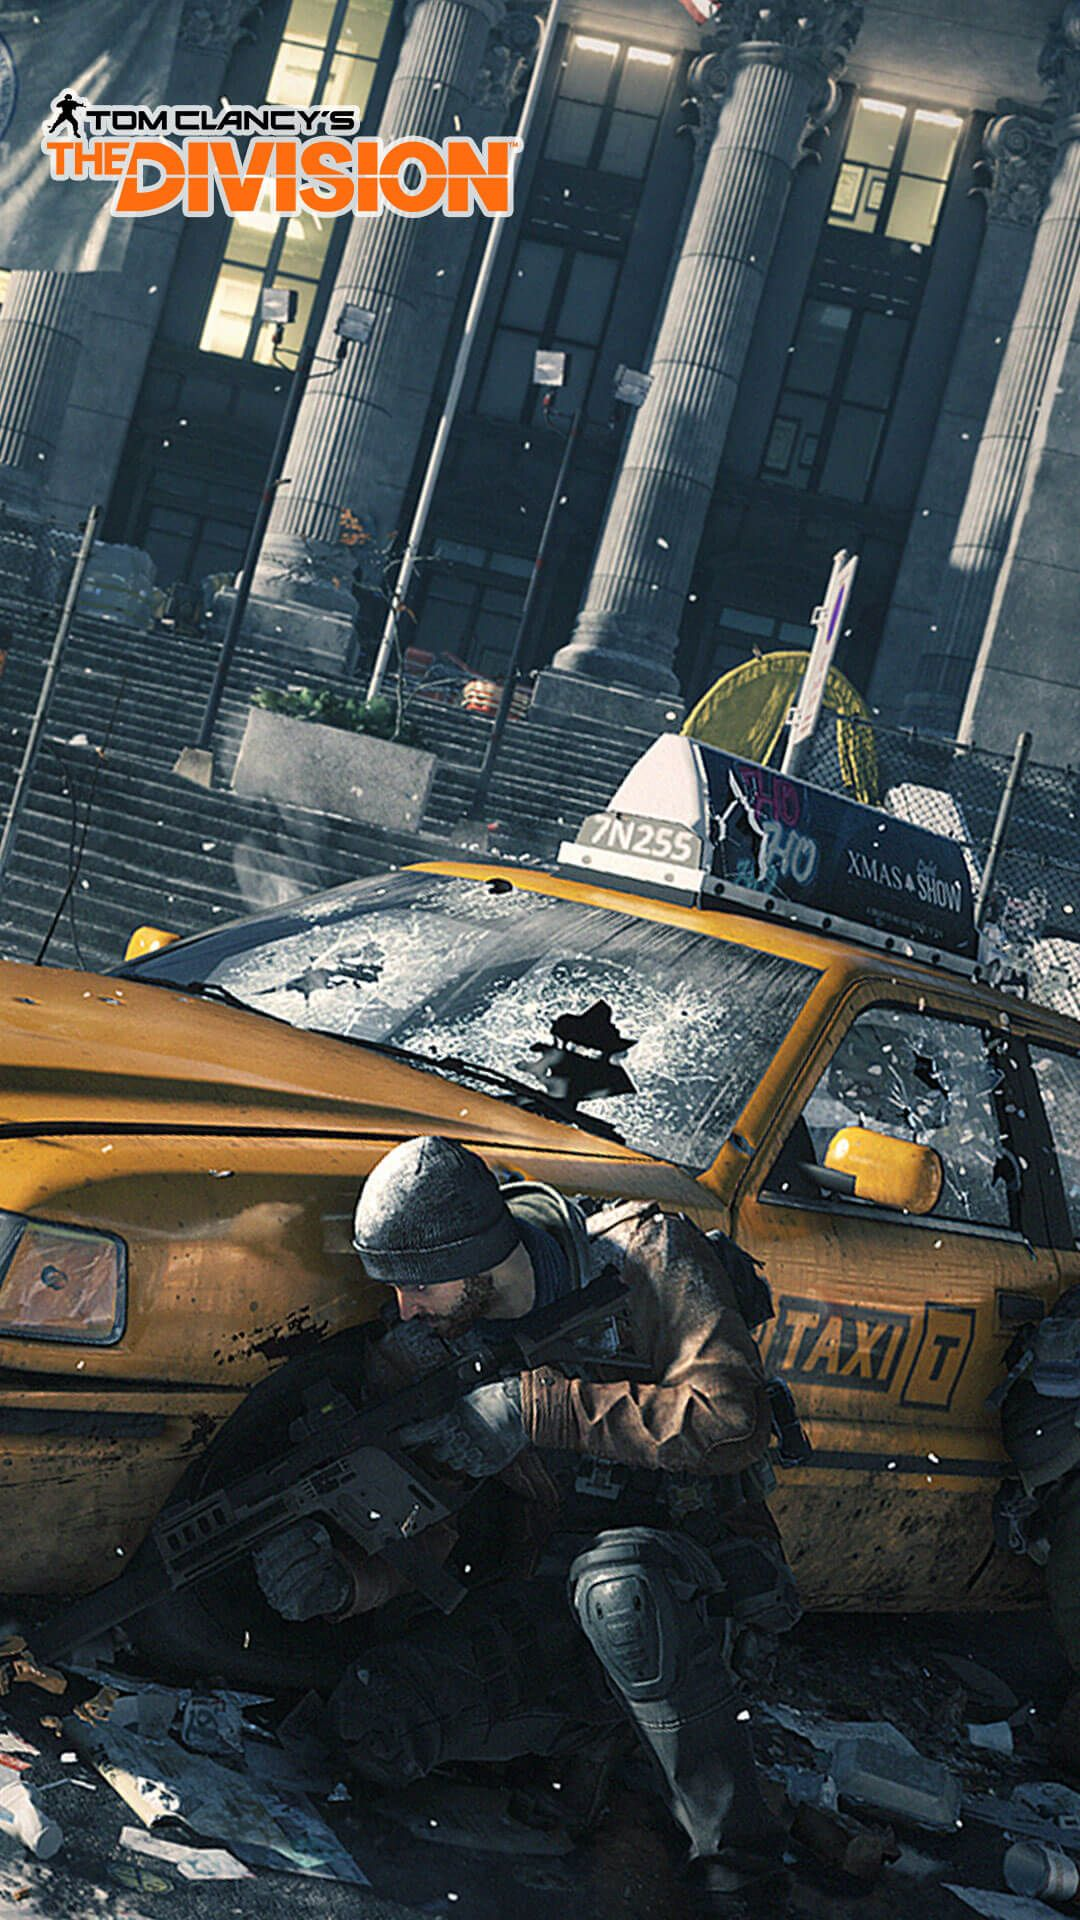 Tom Clancys The Division Iphone Wallpaper Hd Games Wallpaper For